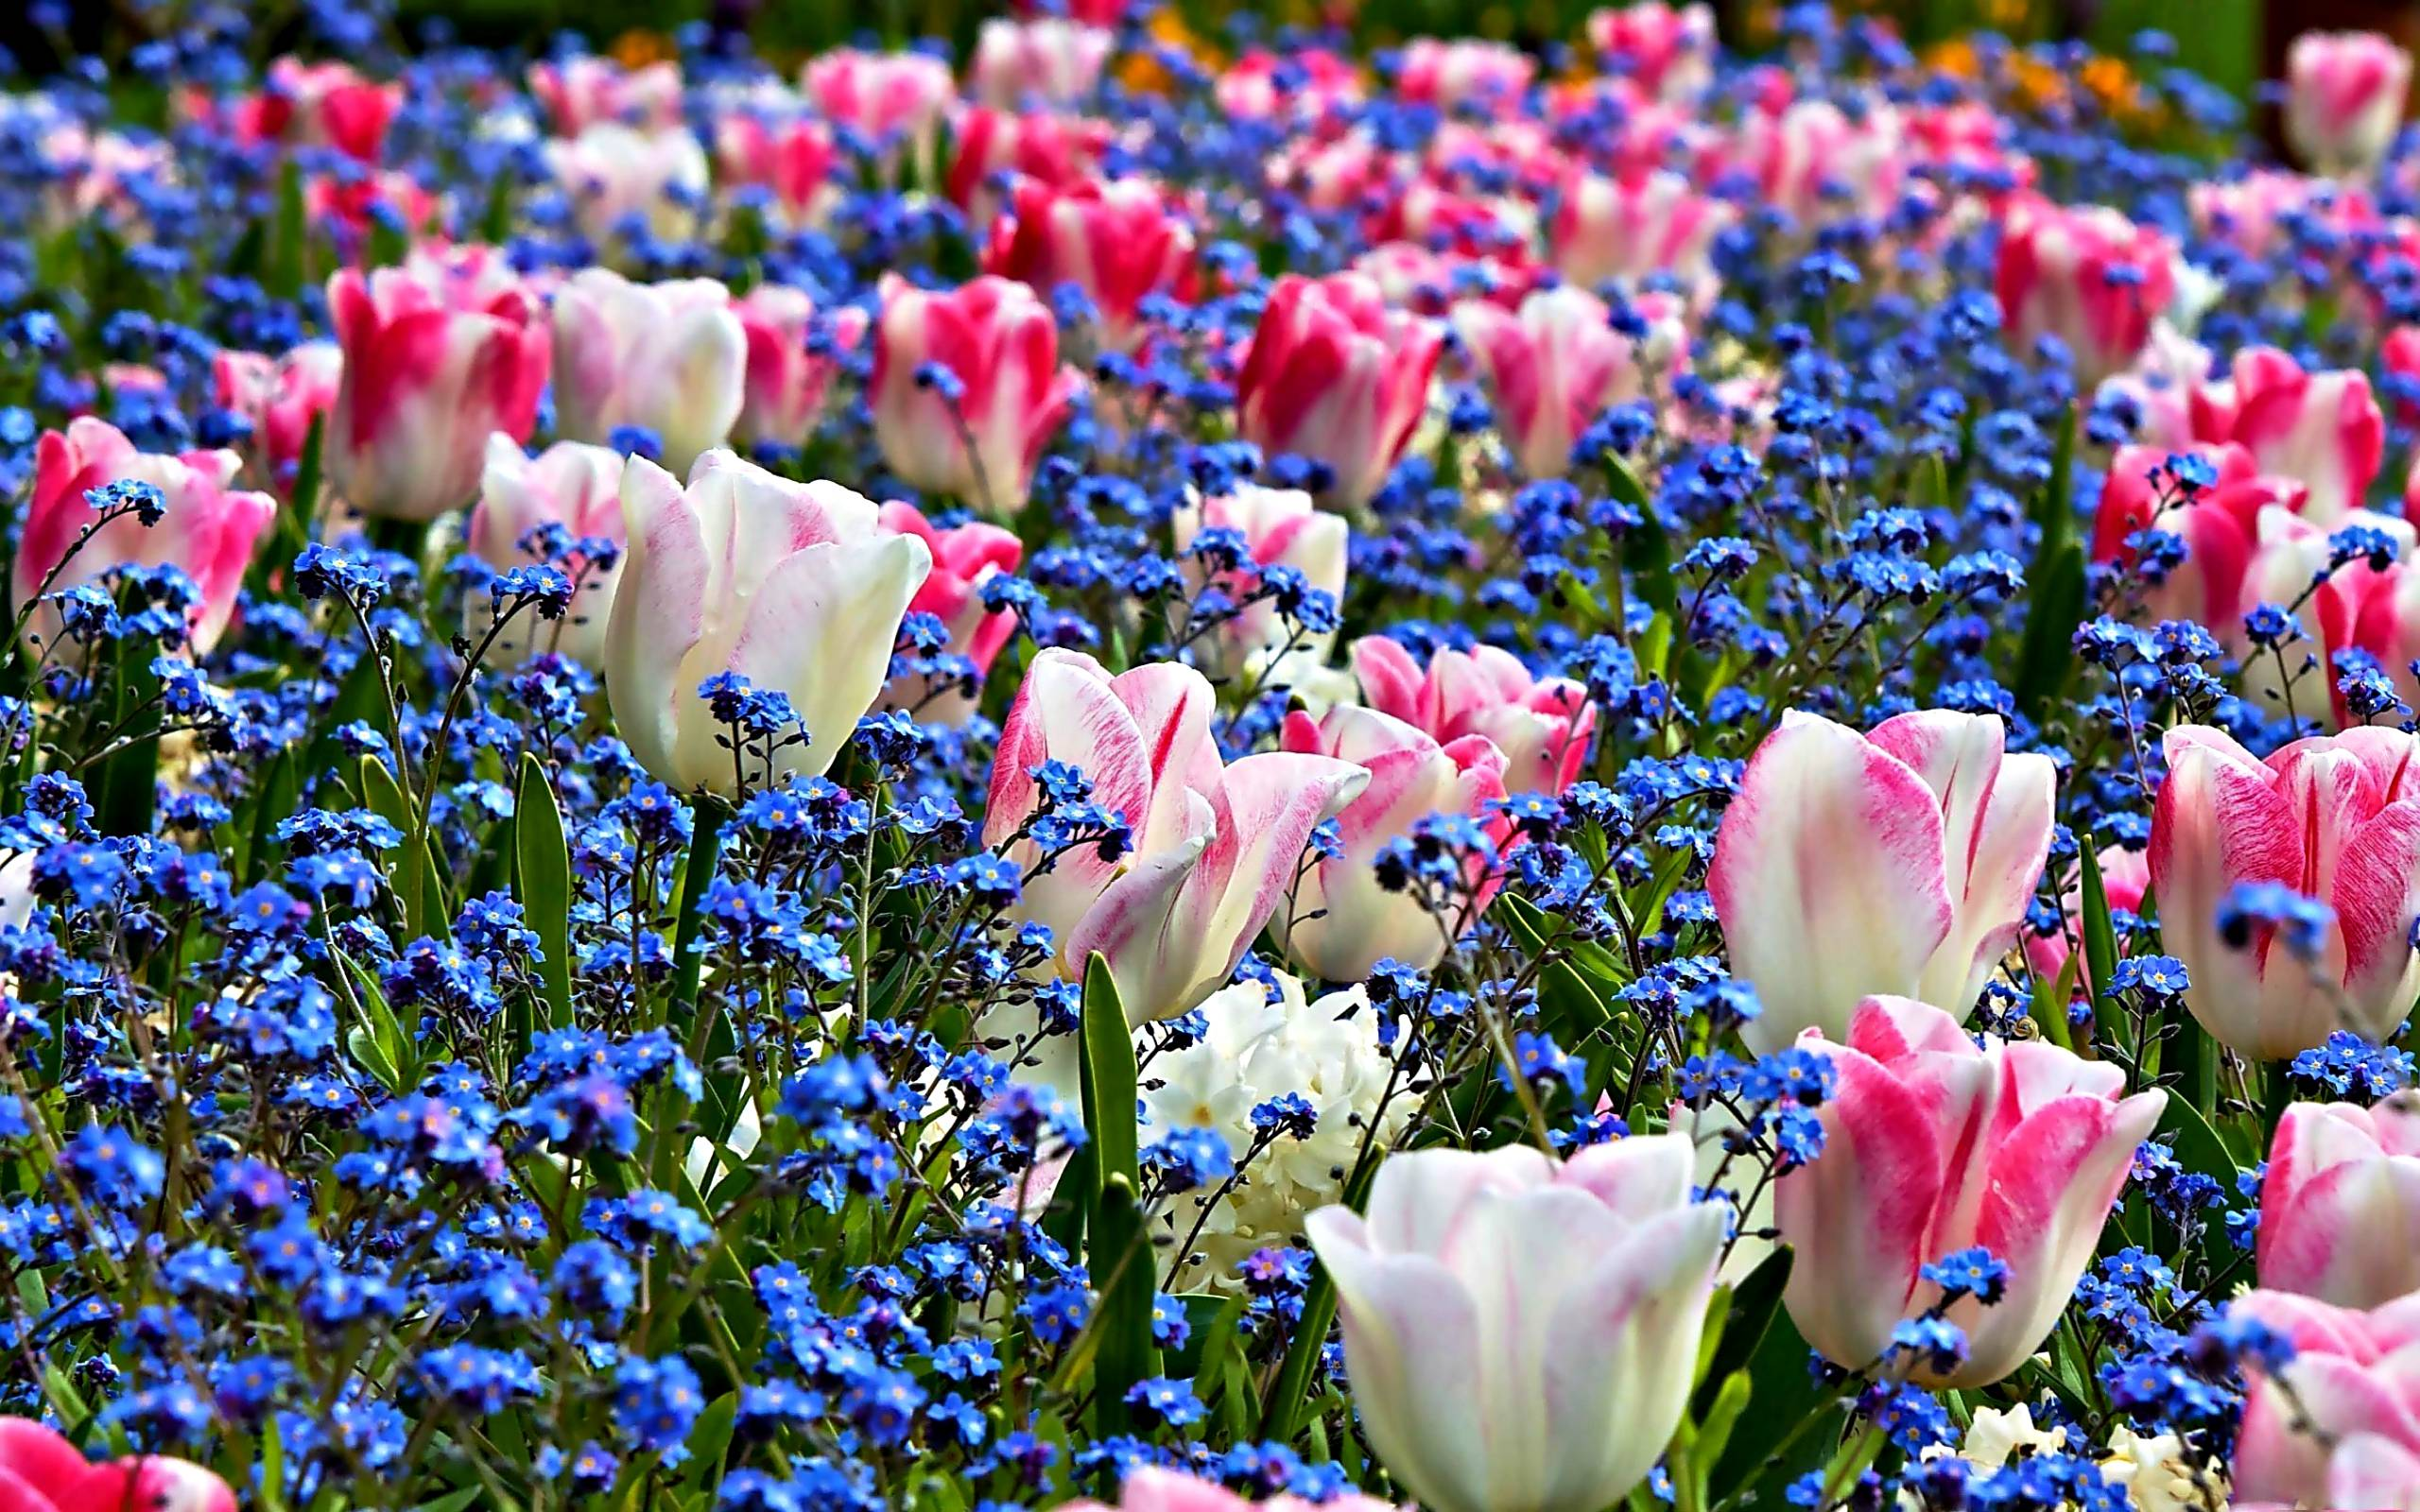 Spring Flower Background Images: Spring Flower Wallpaper Backgrounds